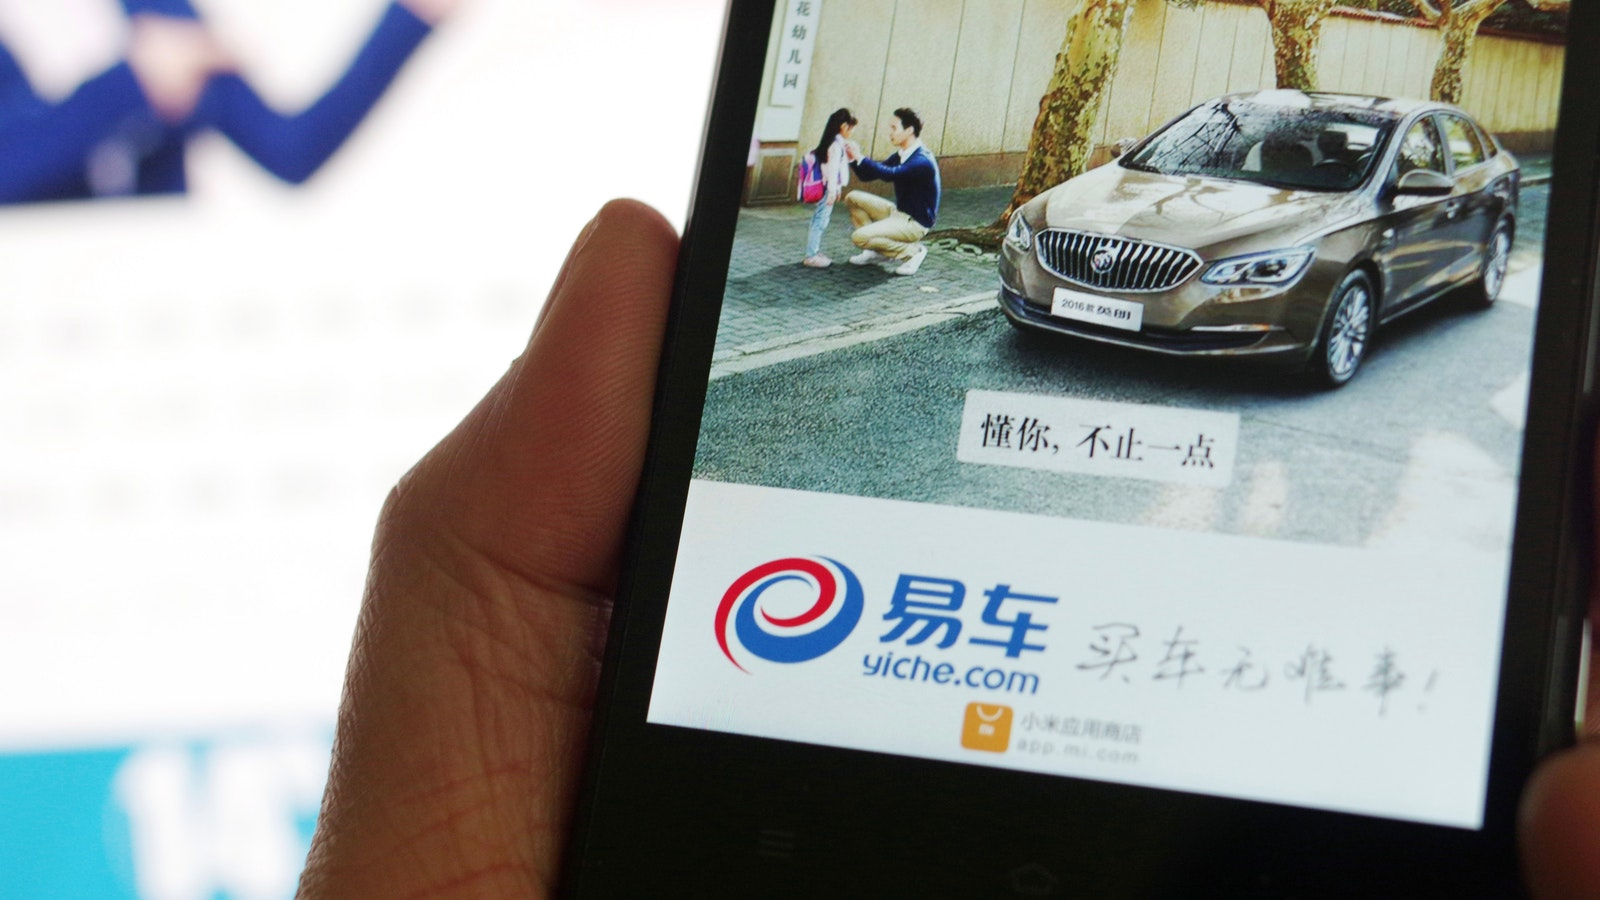 A smartphone app for Chinese auto information website Yiche.com, formerly called Bitauto.com, whose parent company is a big shareholder in Yixin. Photo by AP.